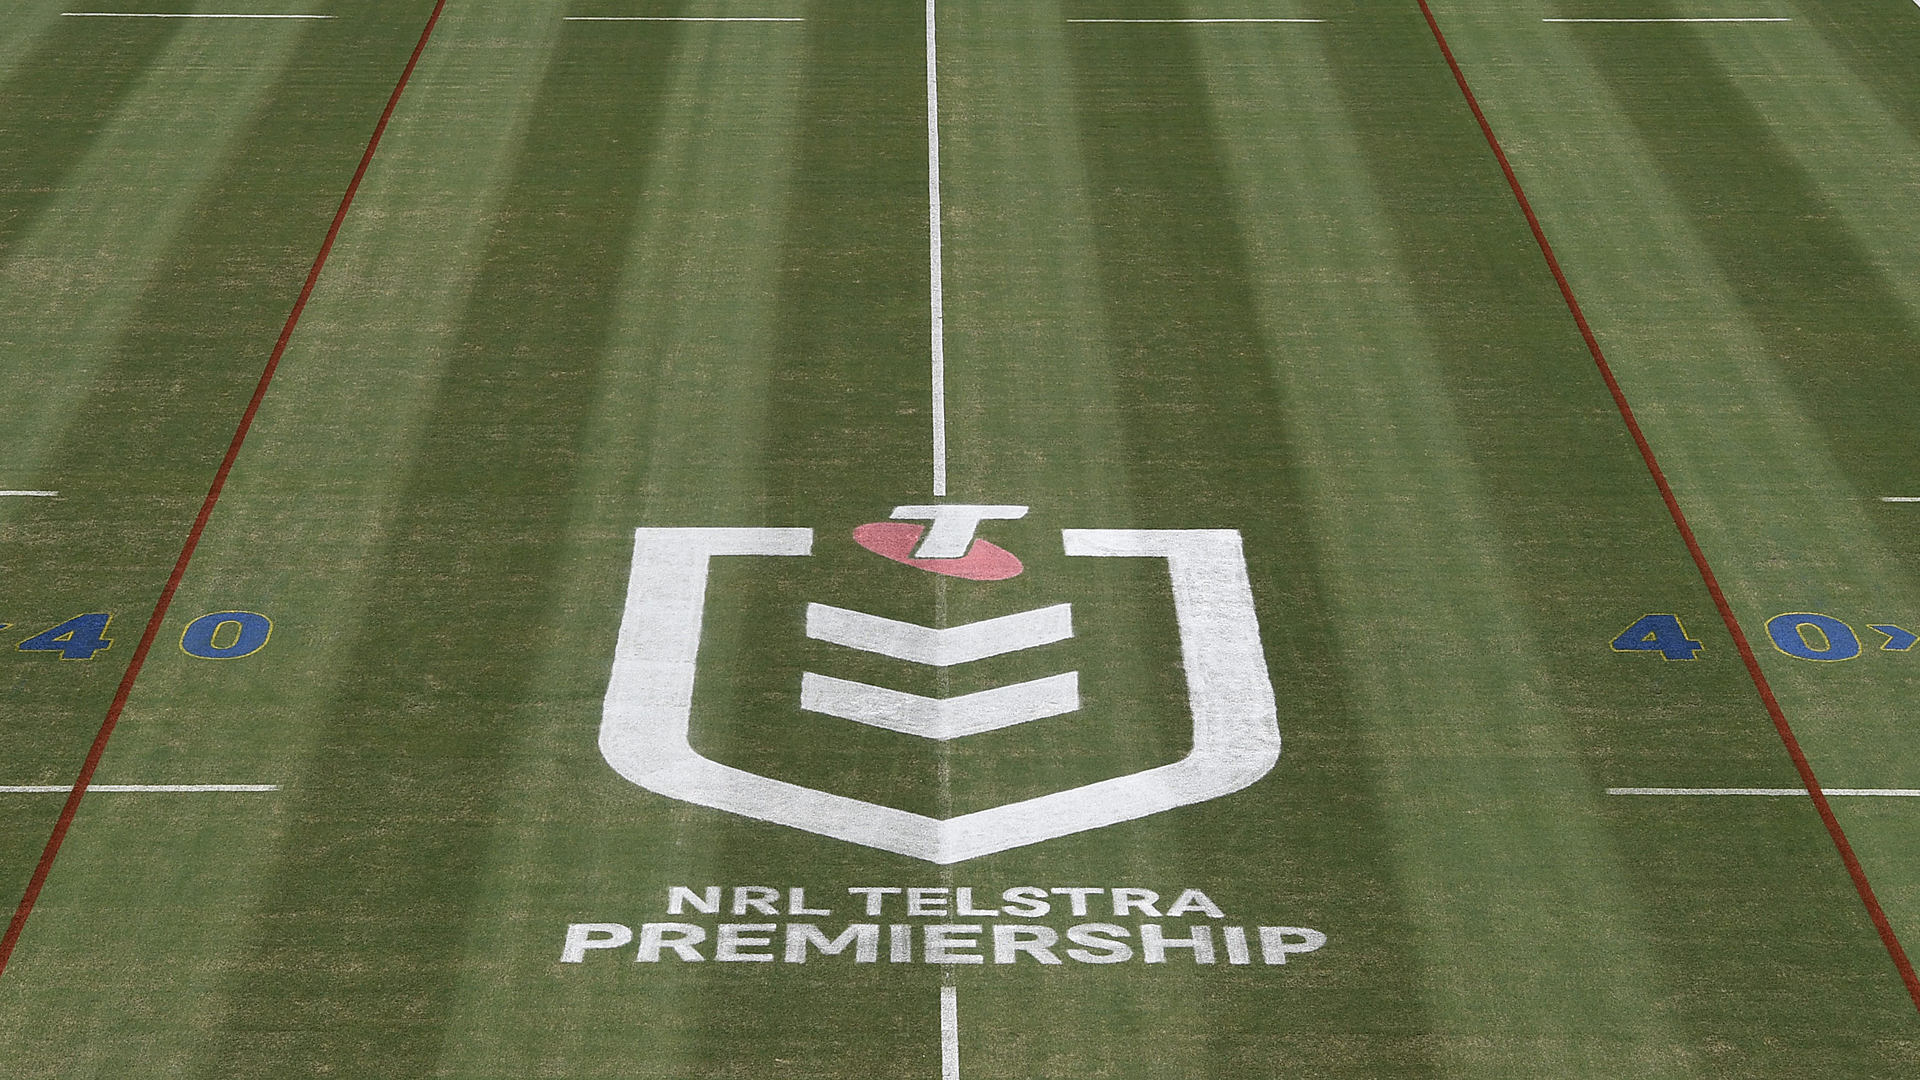 The idea of resetting the NRL ladder once the 2020 season resumes has been scrapped.